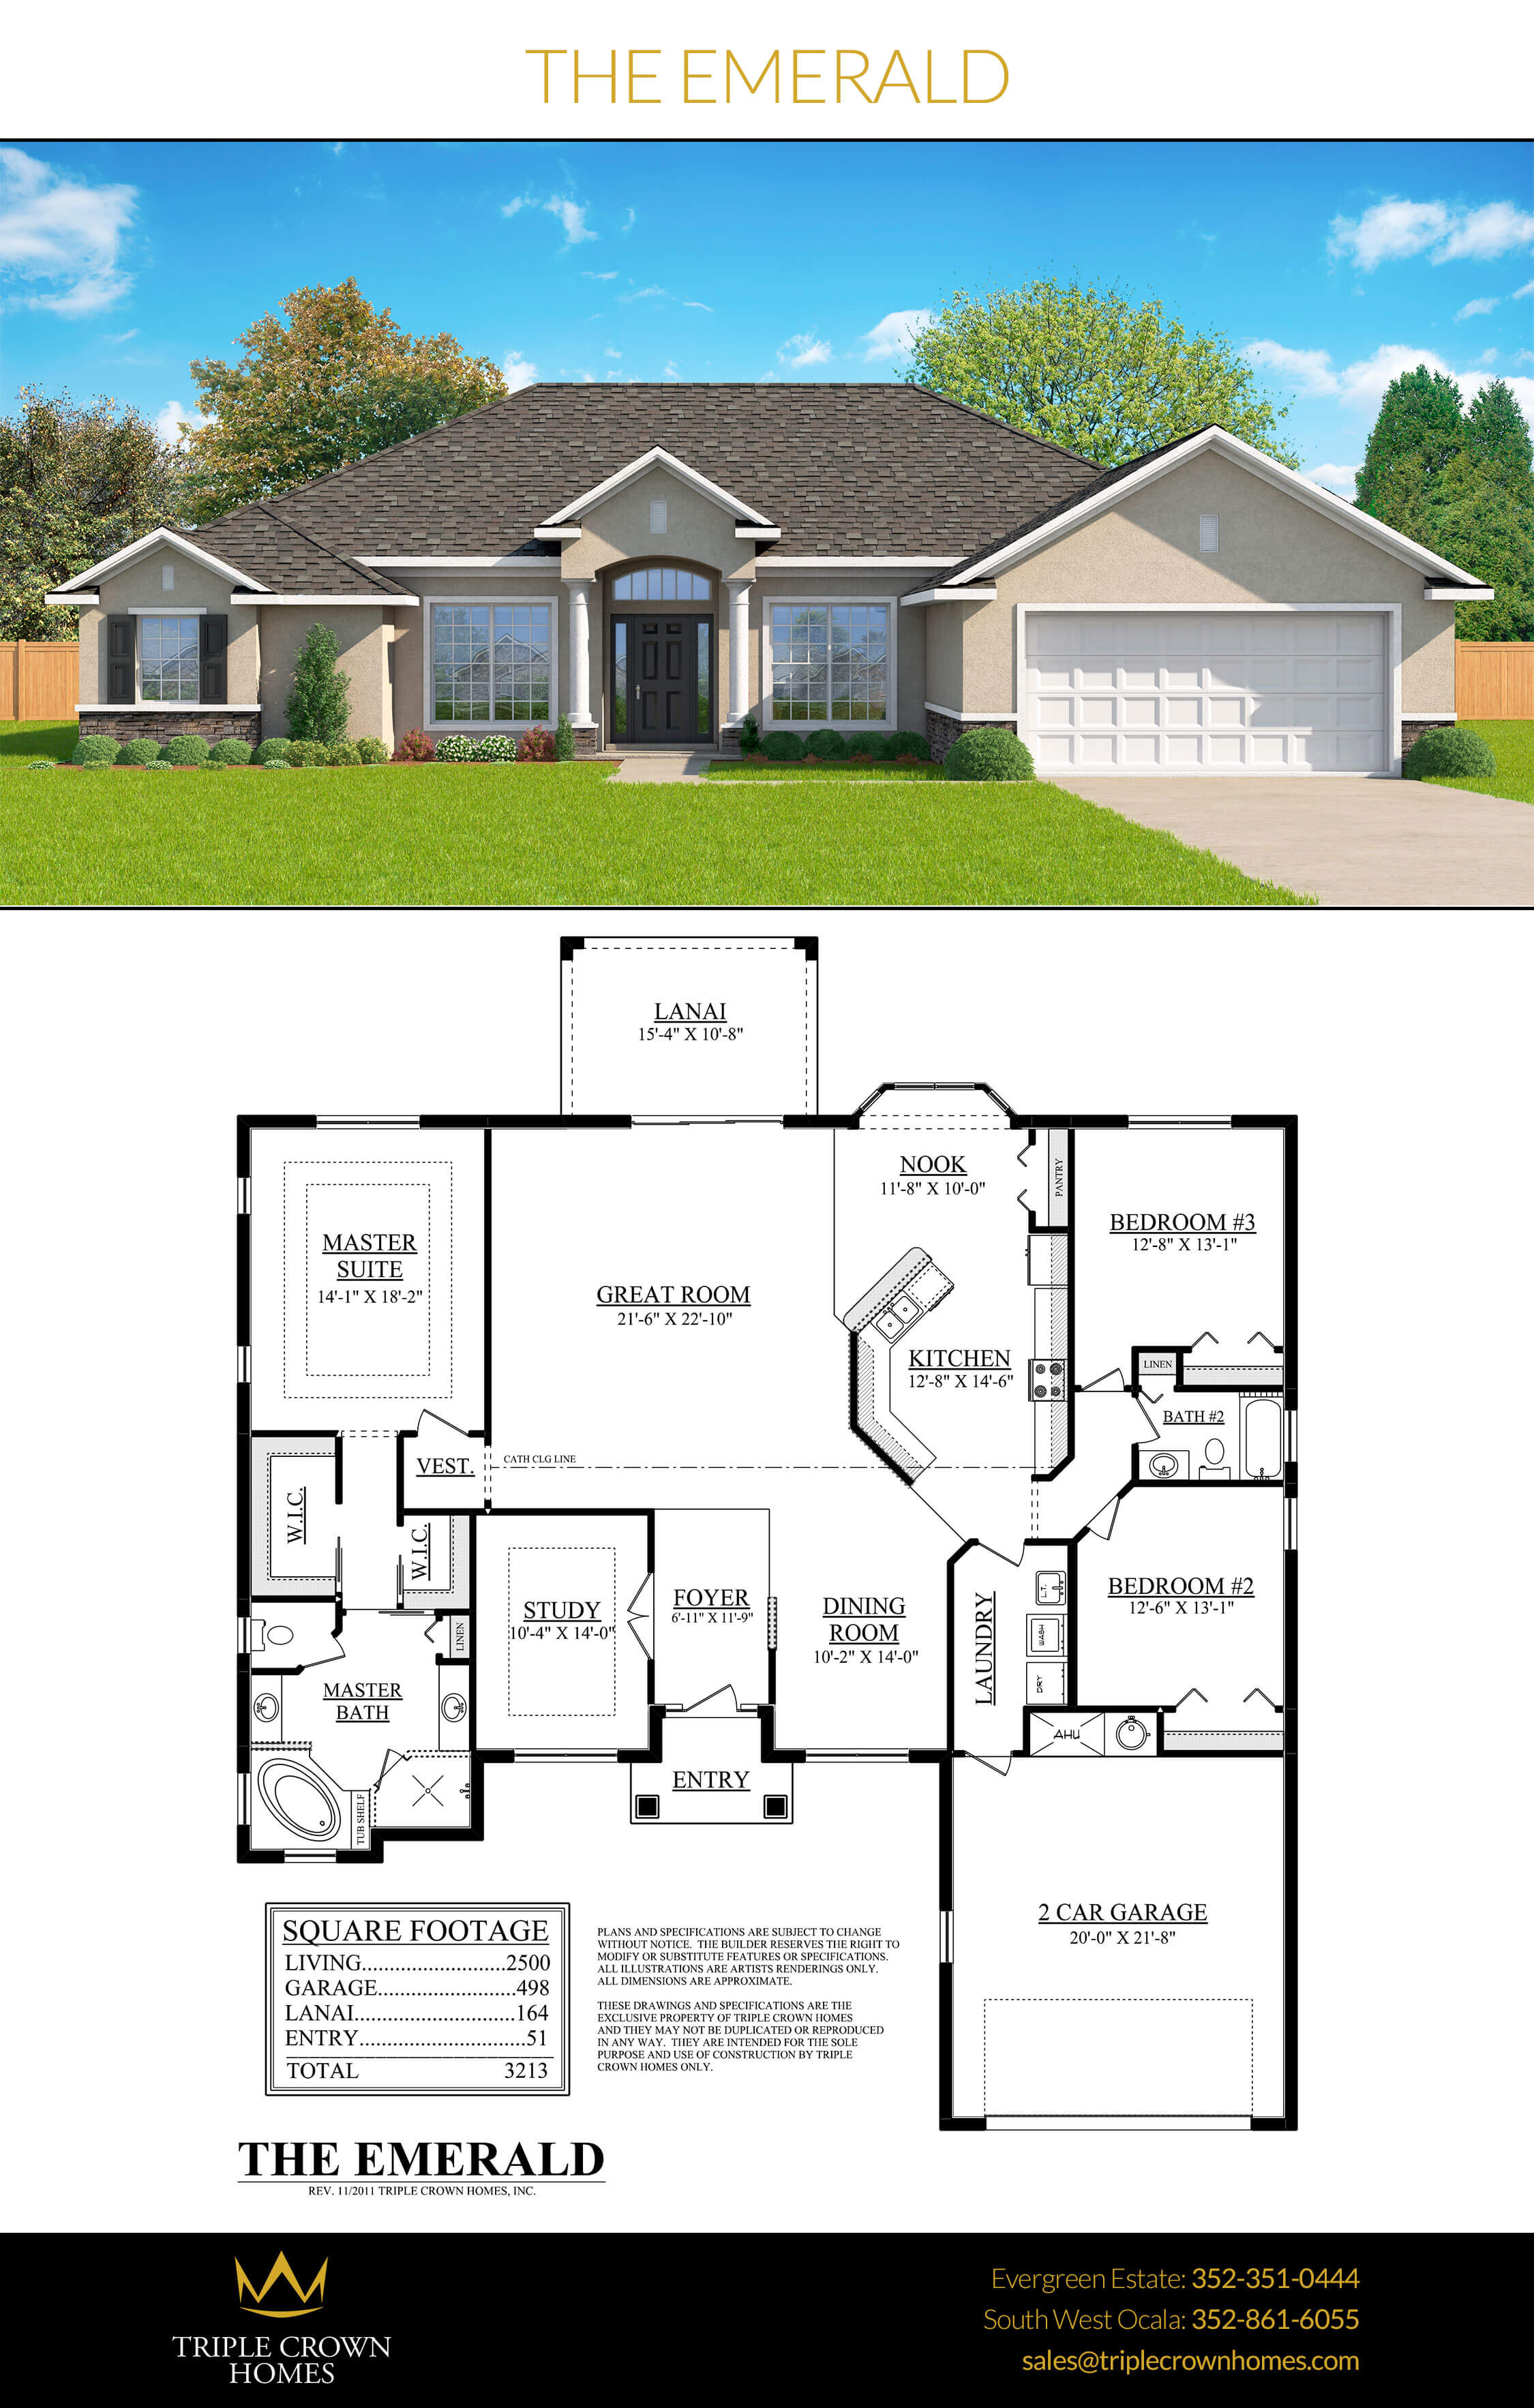 The Emerald Triple Crown Homes